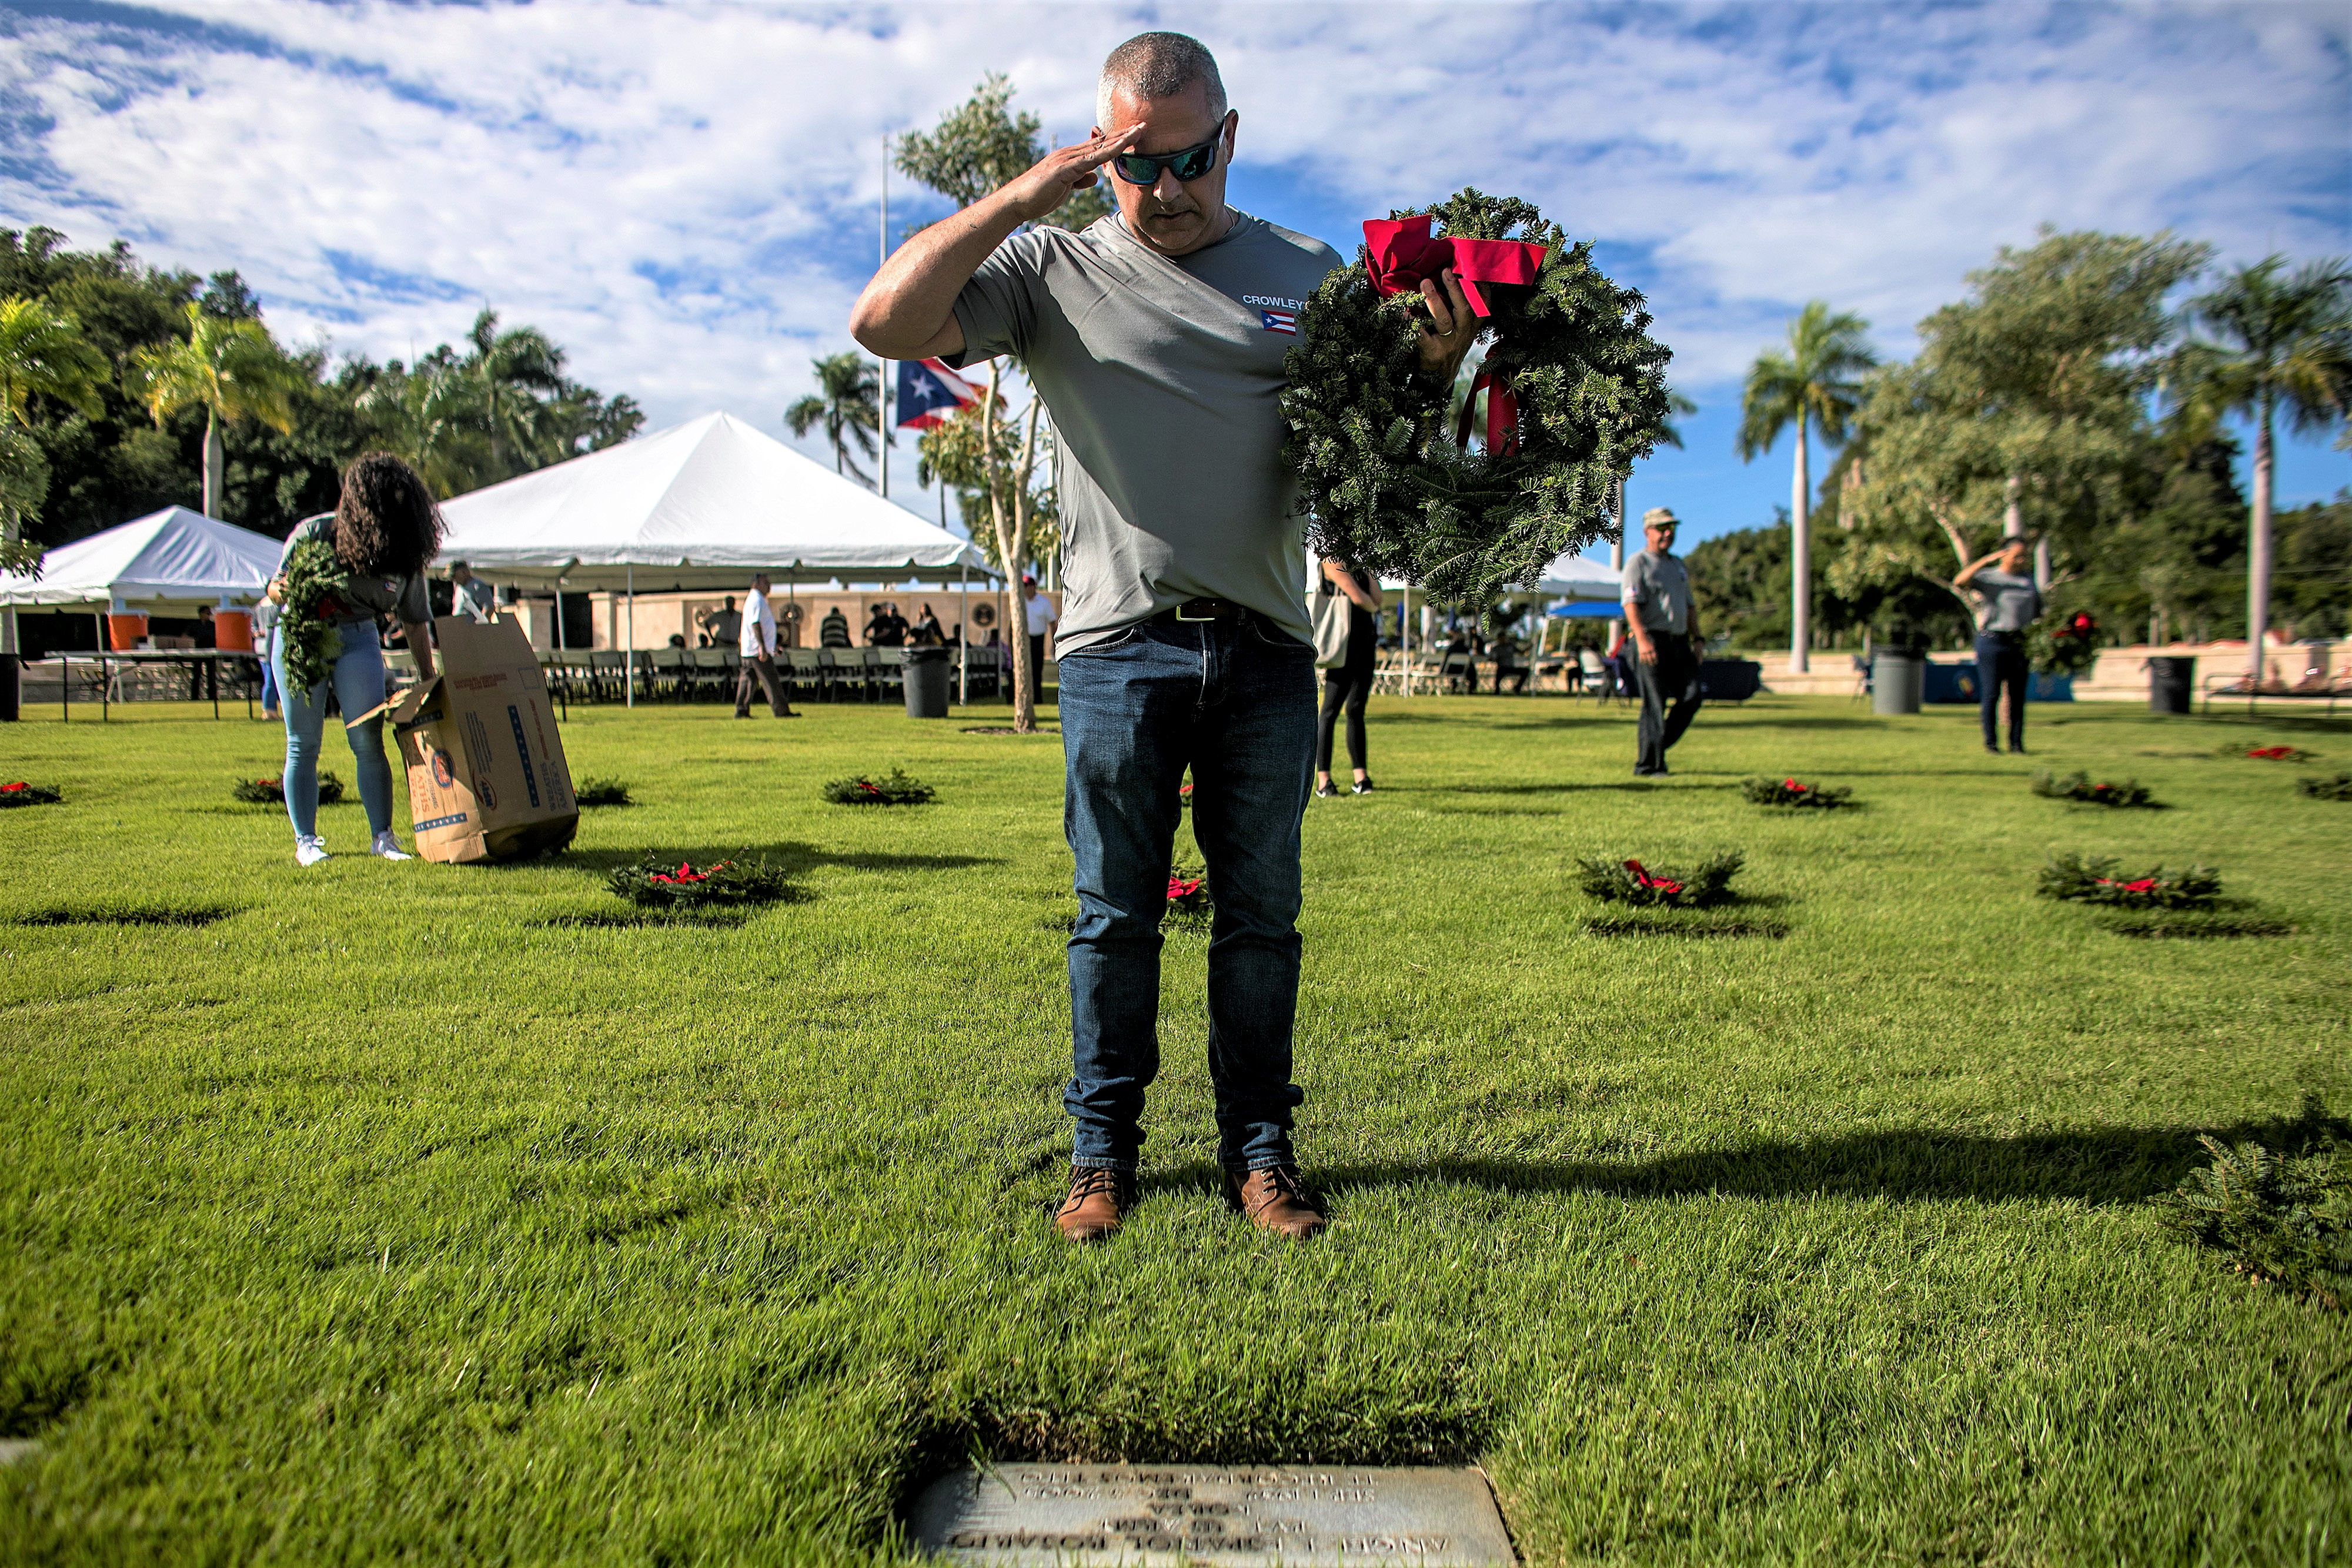 Crowley supports veterans and military in Puerto Rico